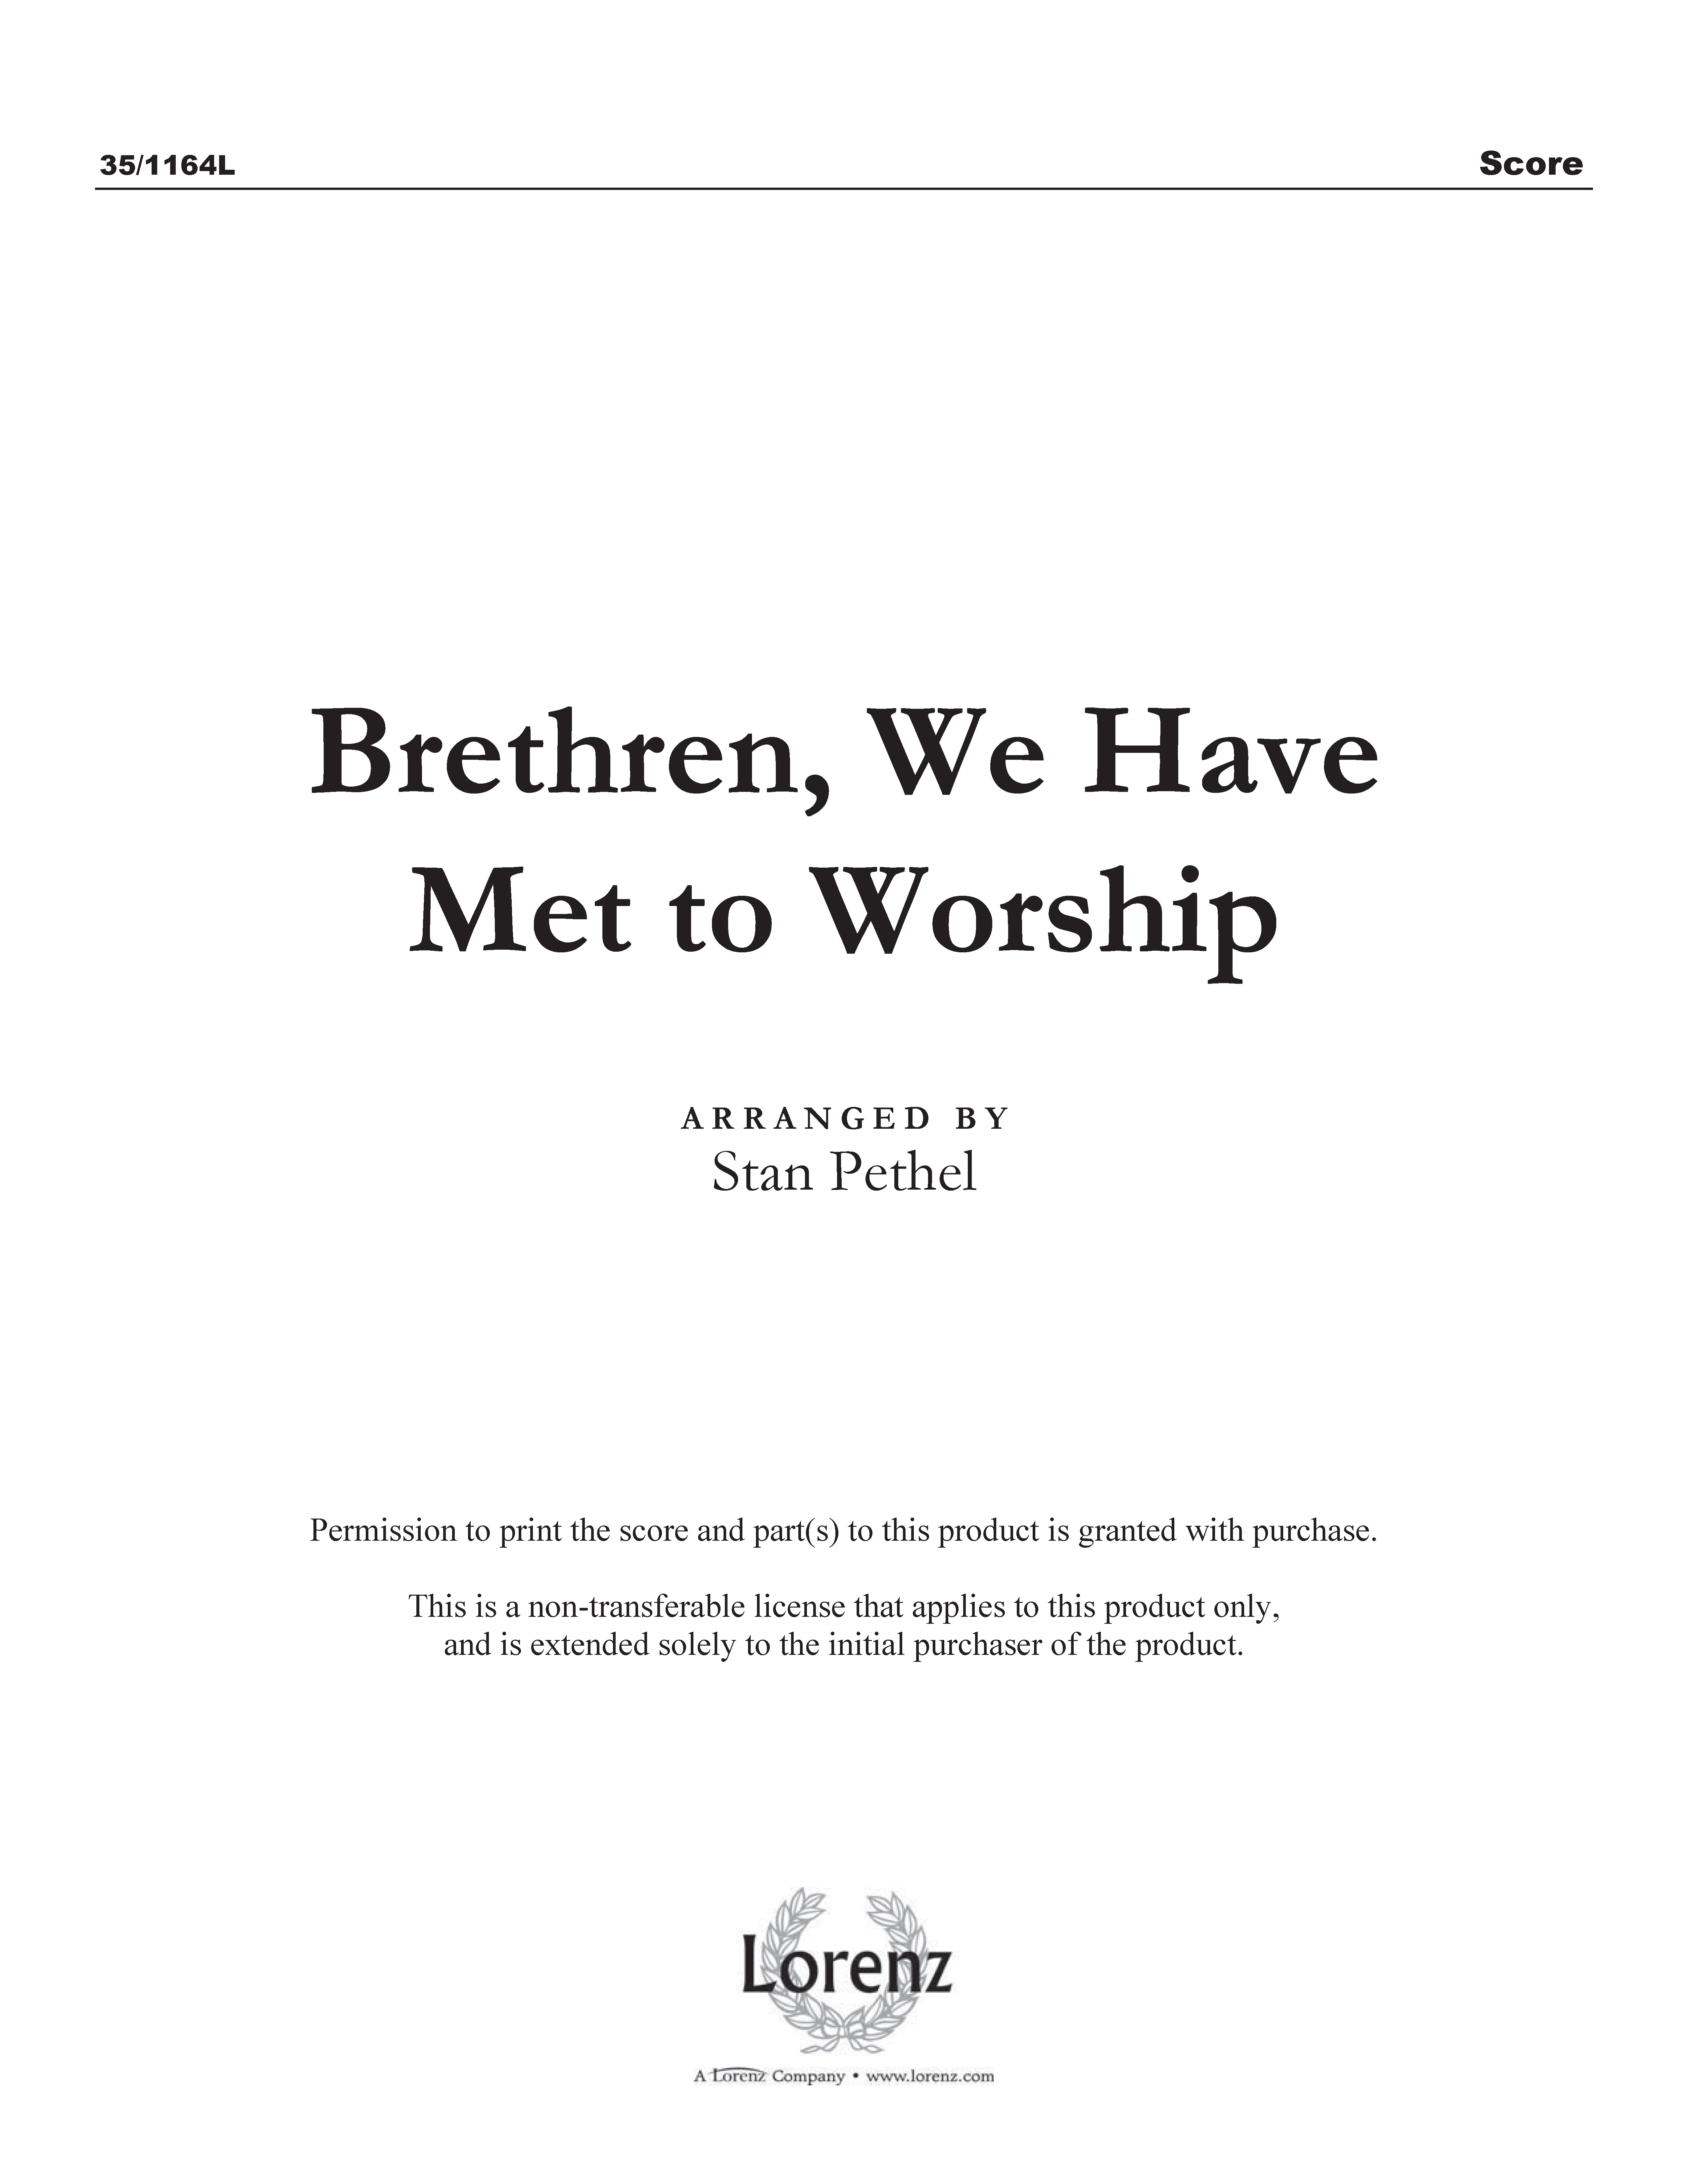 Brethren, We Have Met to Worship (Digital Delivery)